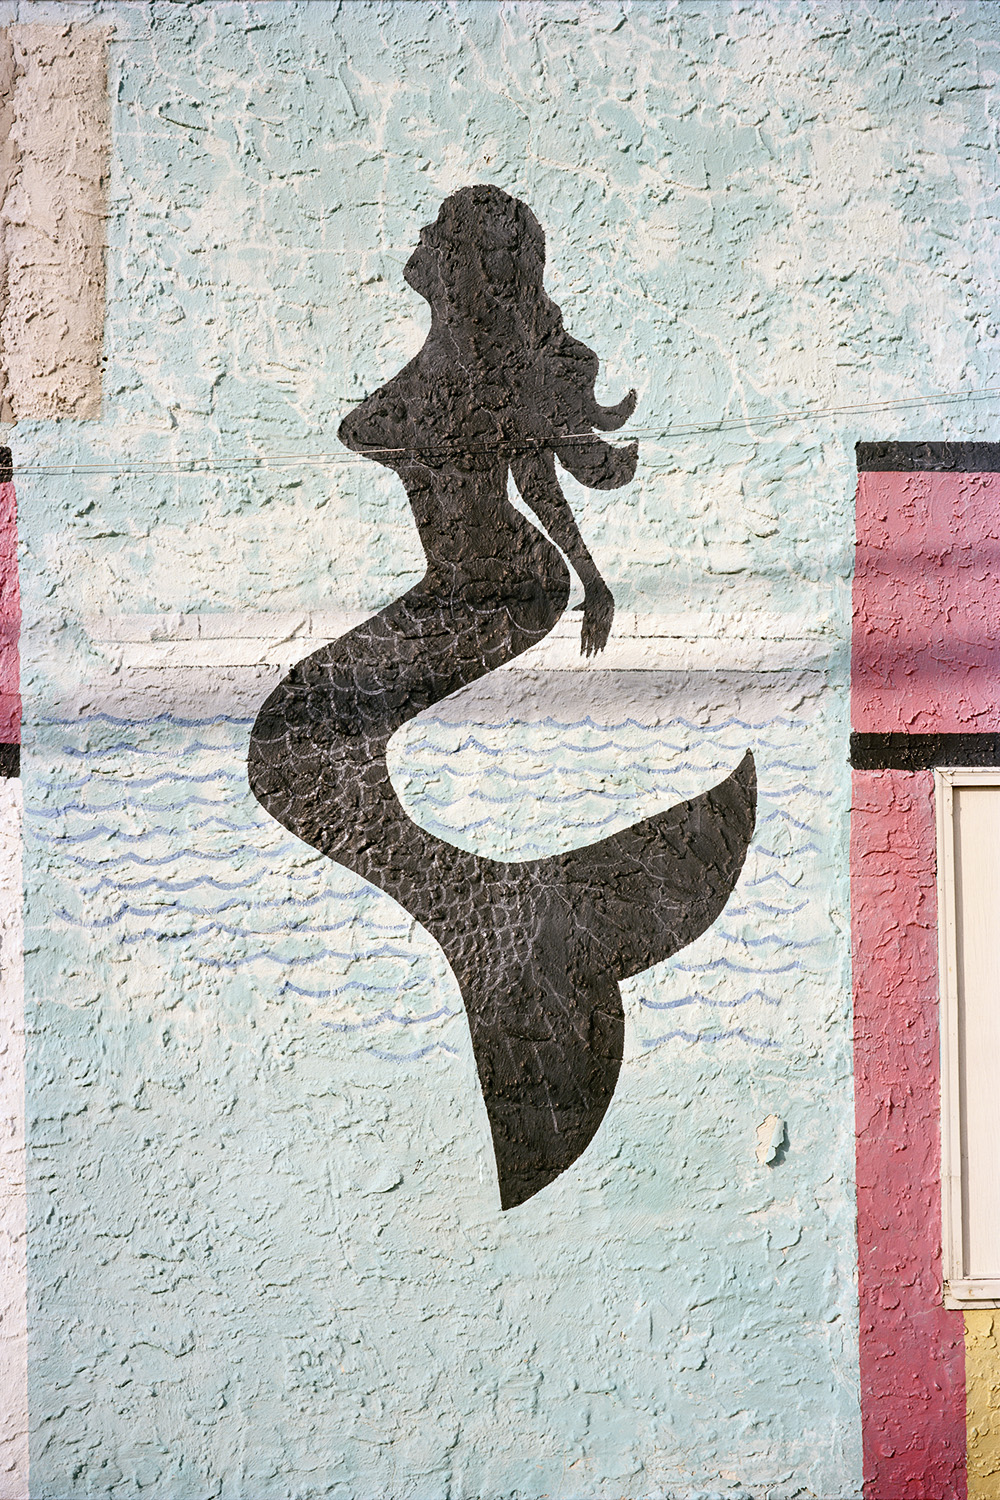 Mermaid, Warrington, PA.